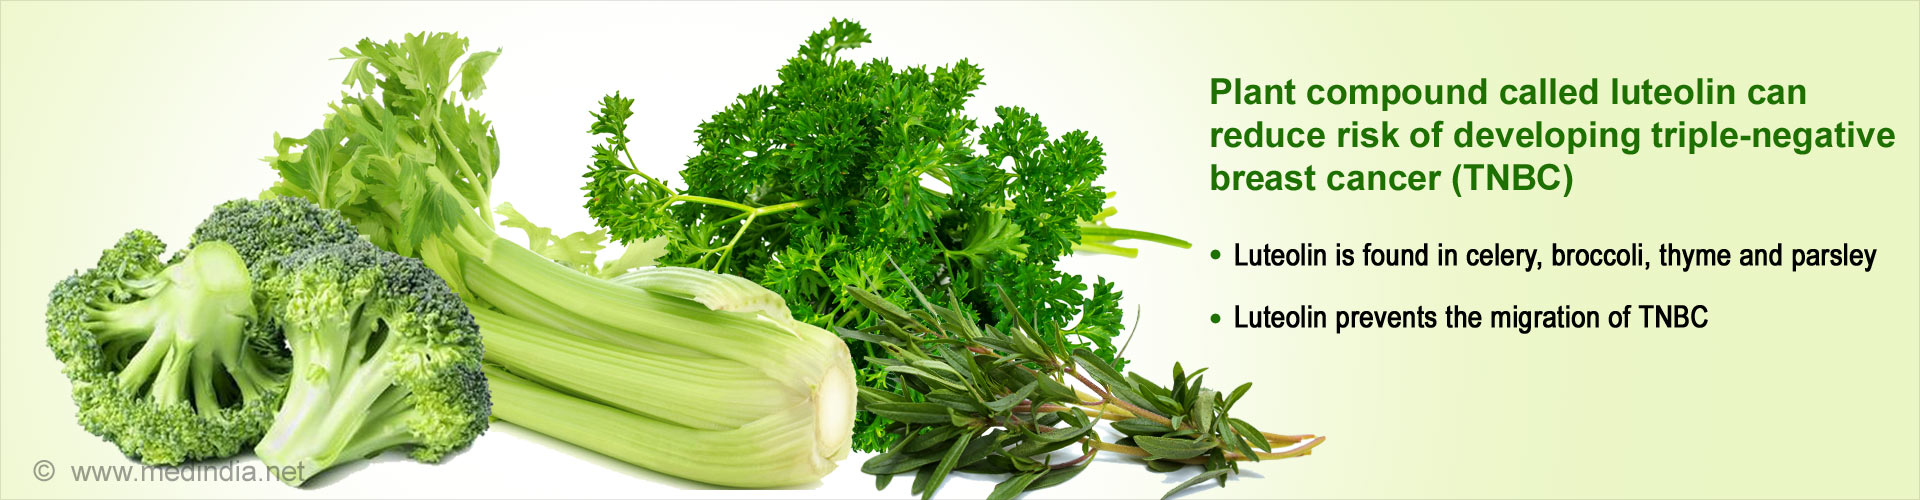 Plant compound called luteolin can reduce risk of developing triple-negative breast cancer (TNBC) - Luteolin is found in celery, broccoli, thyme and parsley - Luteolin prevents the migration of TNBC